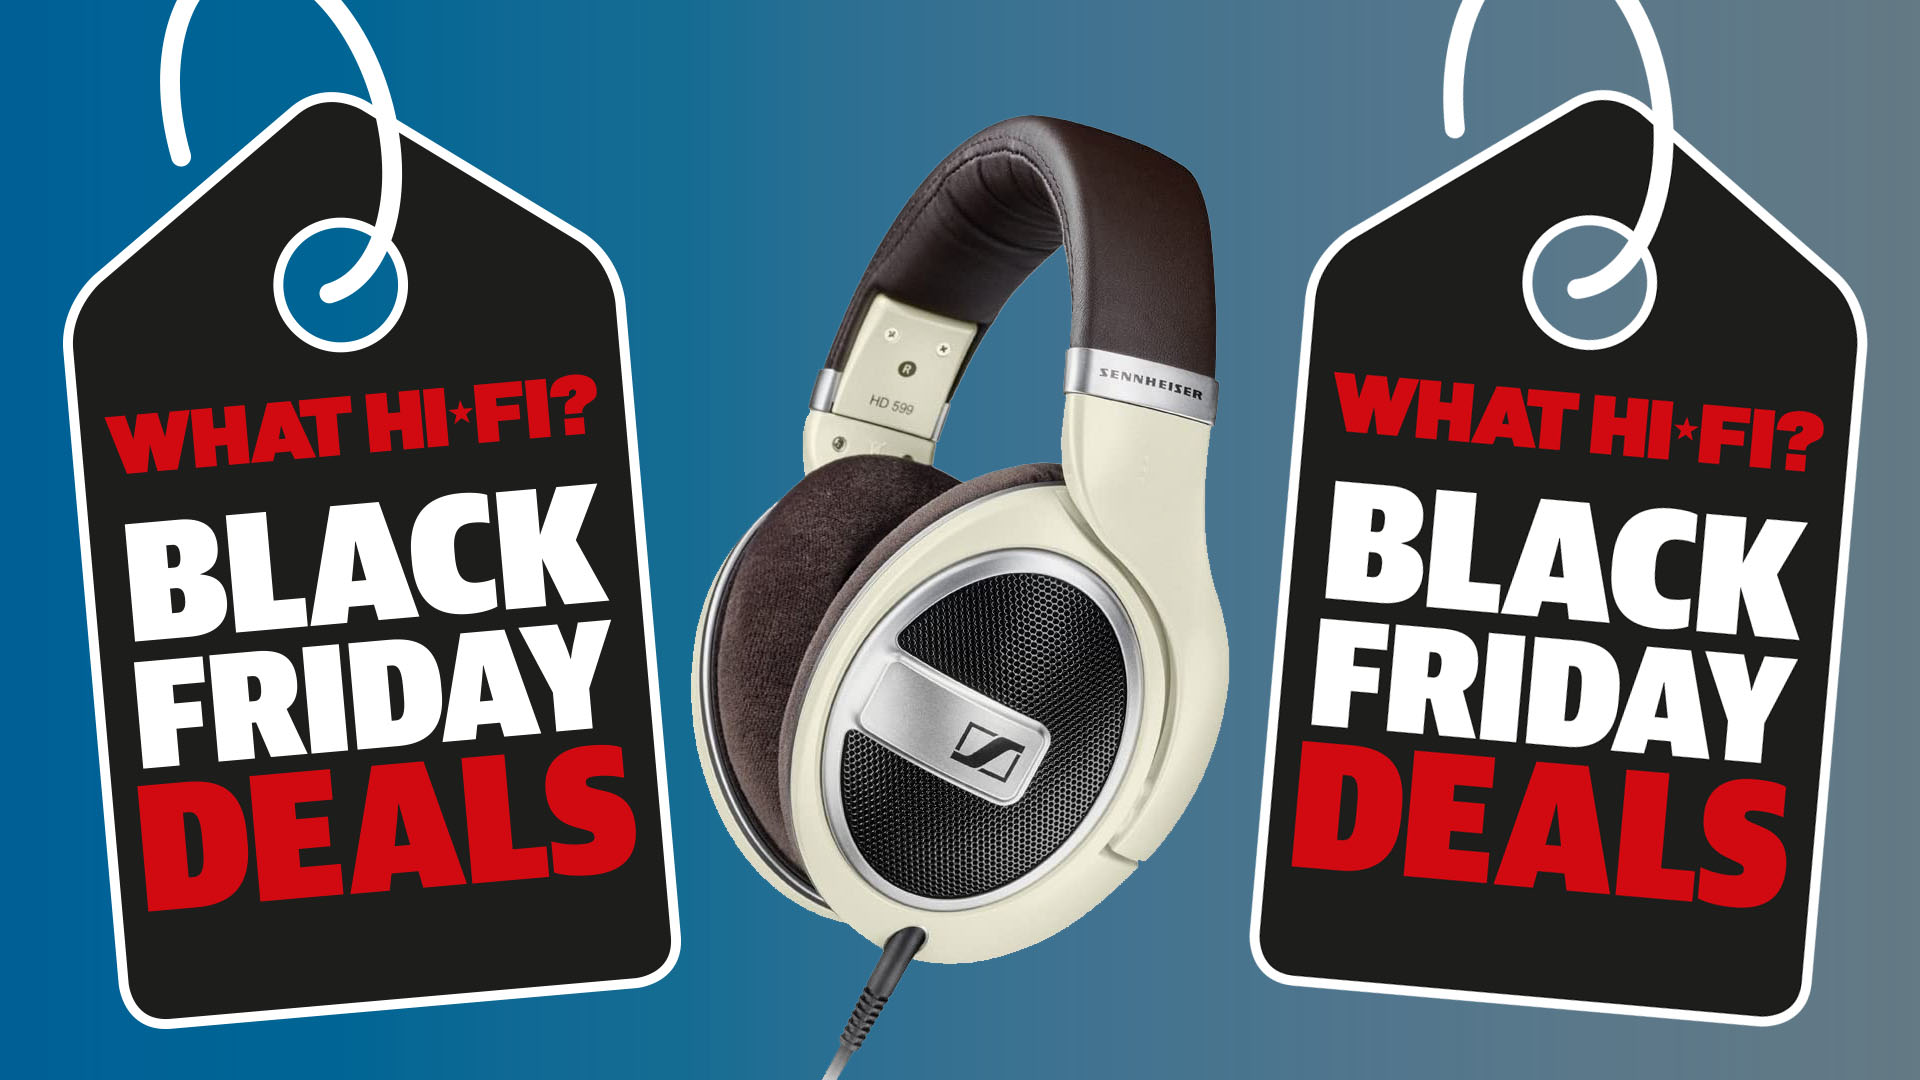 Best black Friday deals in 2020 post thumbnail image